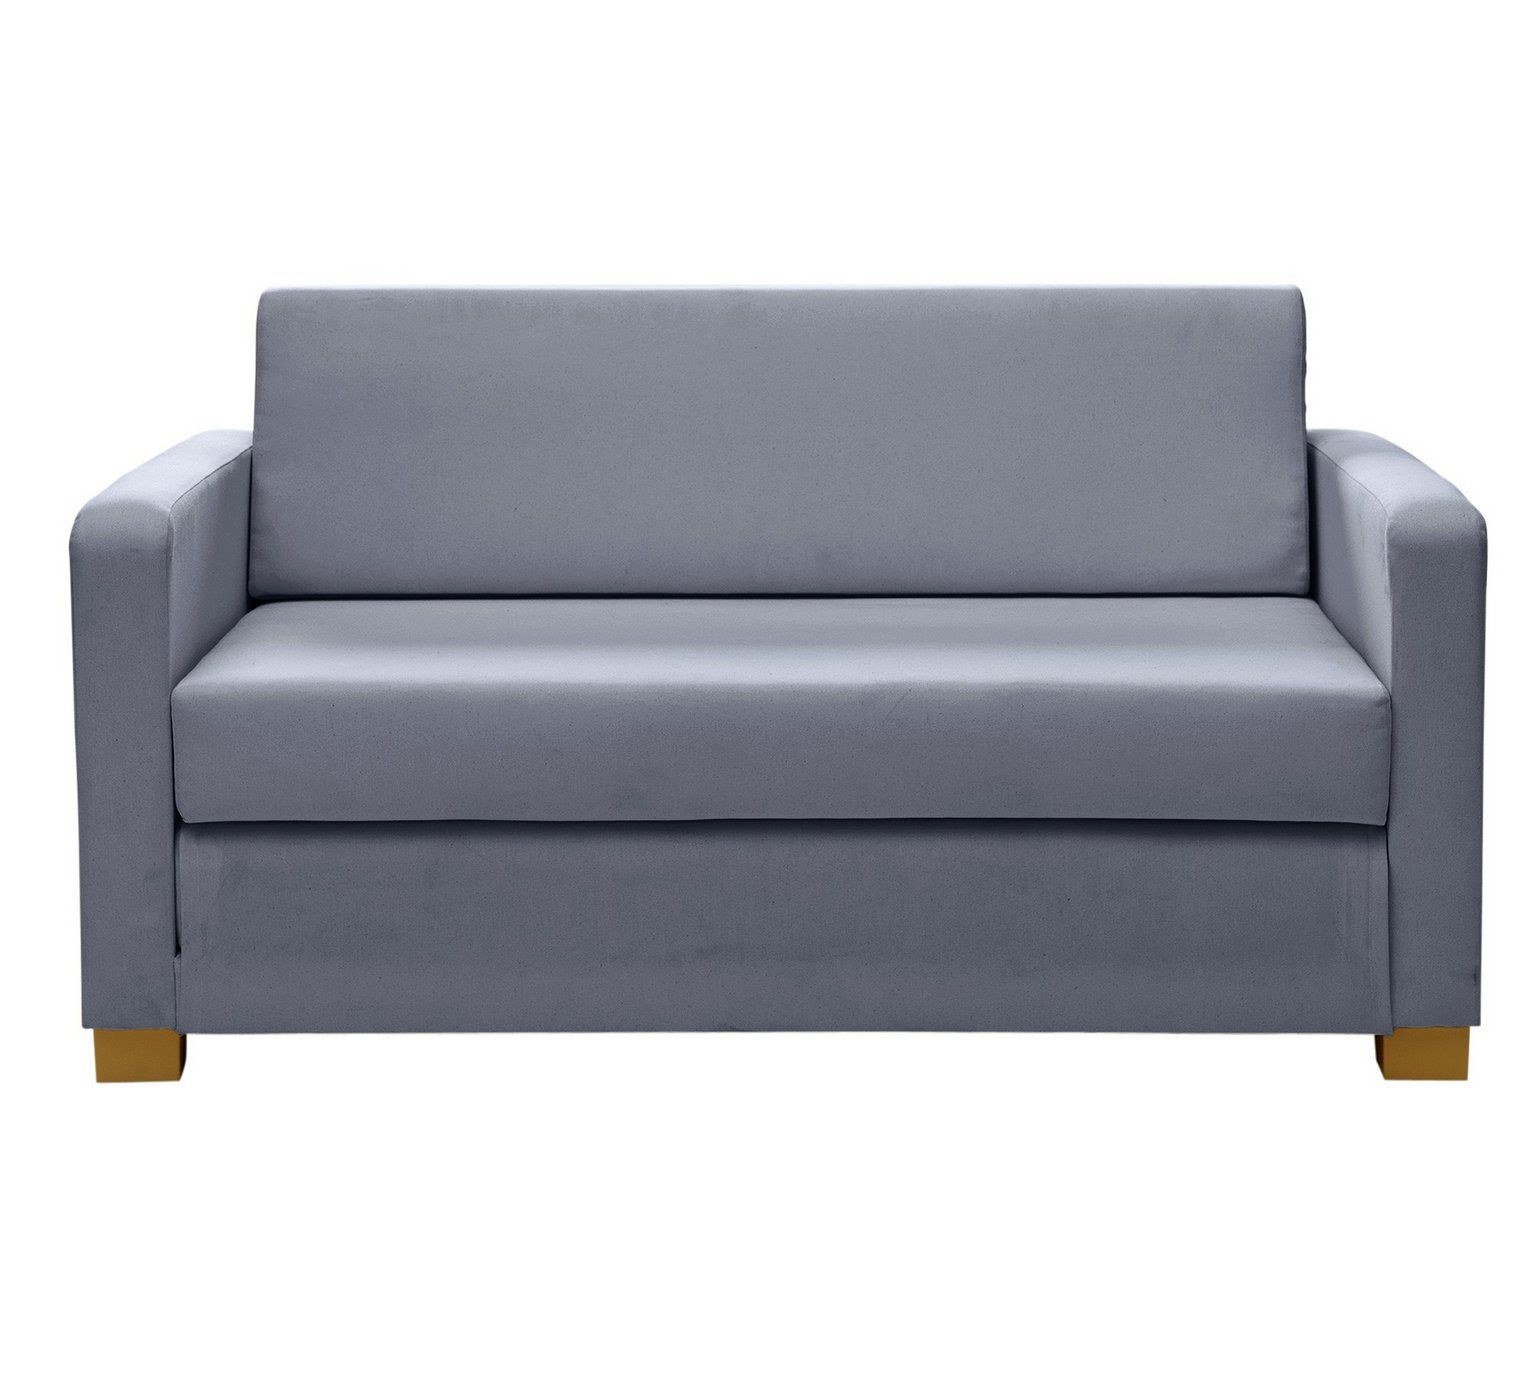 buy home lucy 2 seater fabric sofa bed   grey at argos co uk buy home lucy 2 seater fabric sofa bed   grey at argos co uk      rh   pinterest co uk